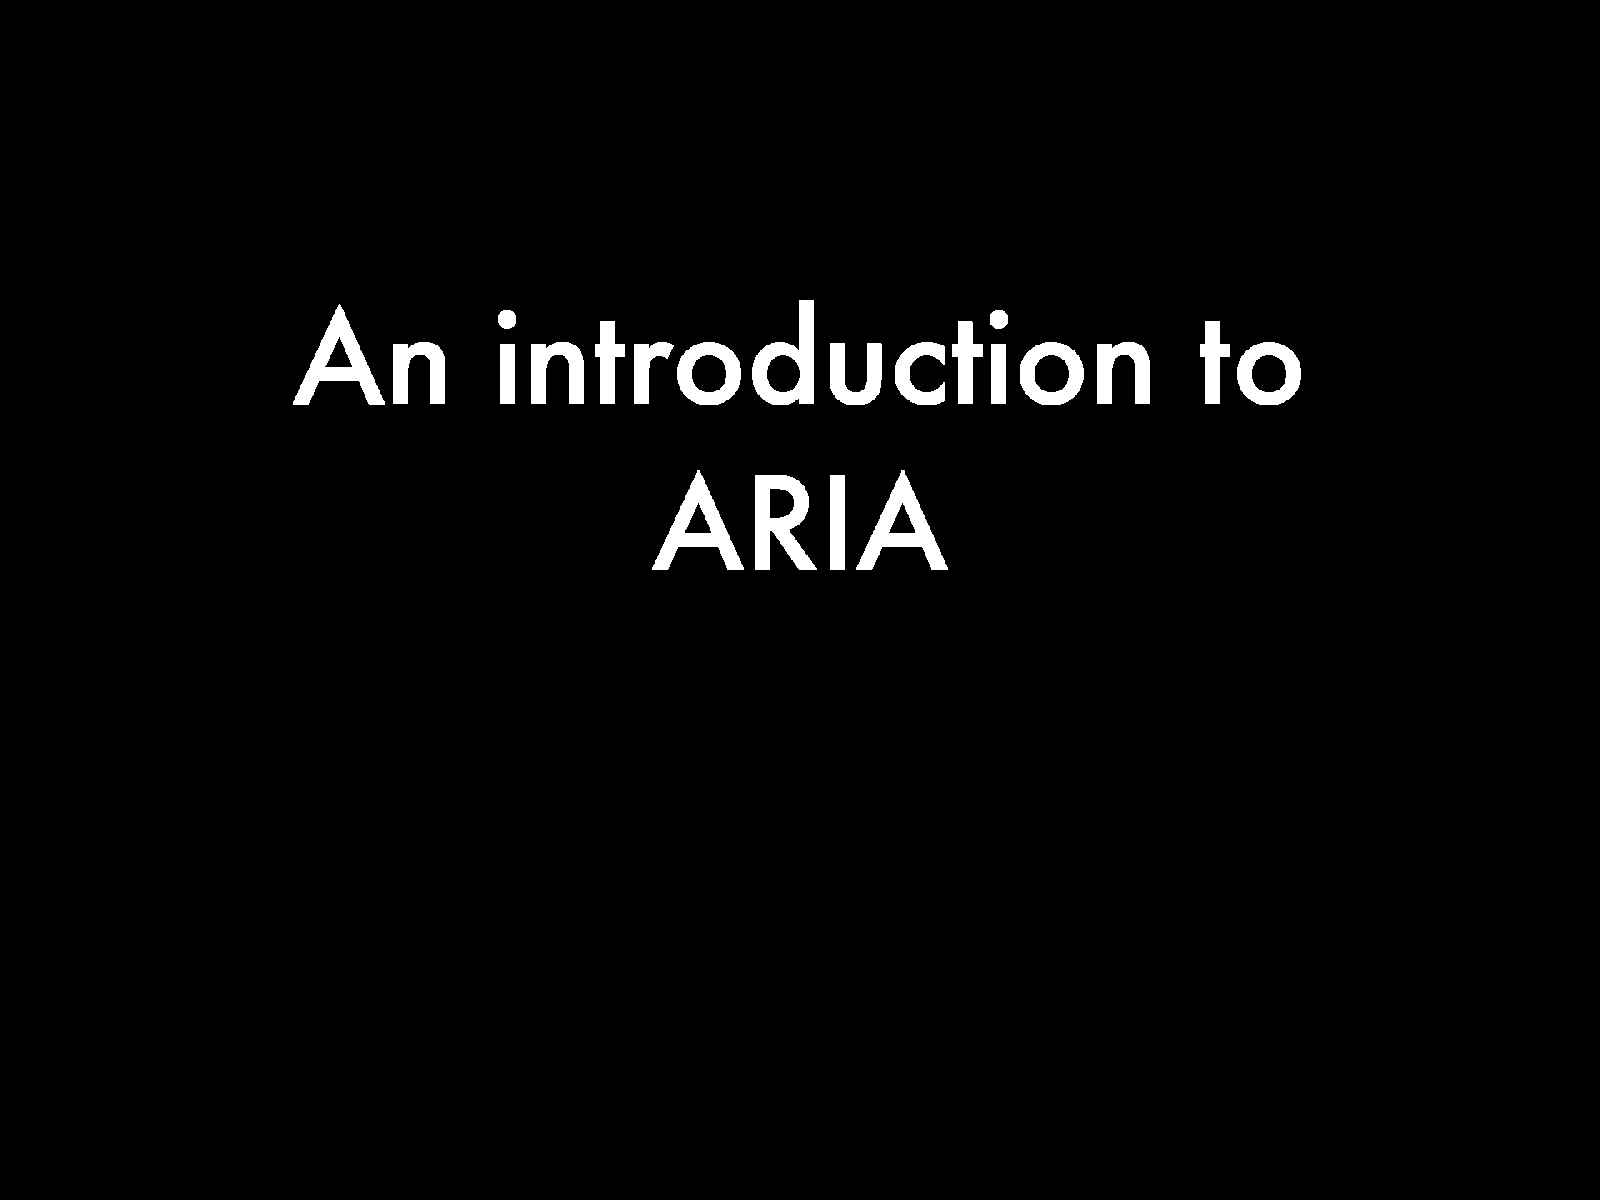 An Introduction to ARIA